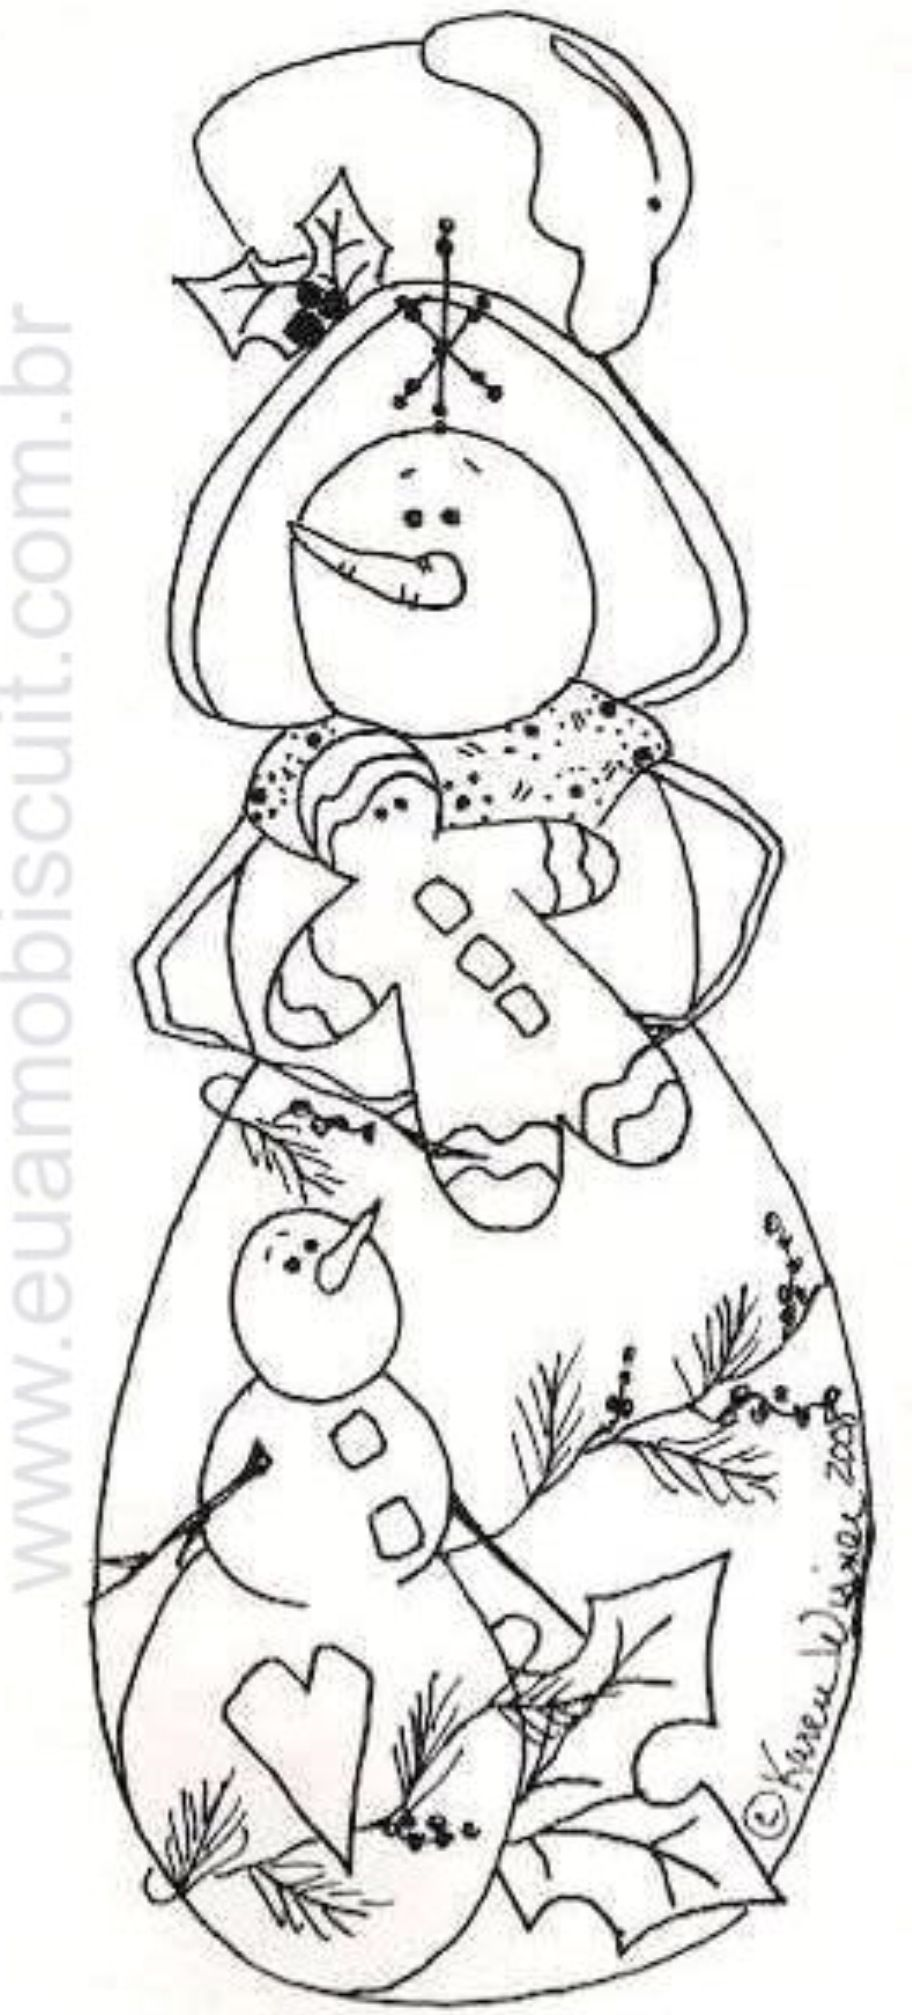 47+ Country christmas coloring pages ideas in 2021